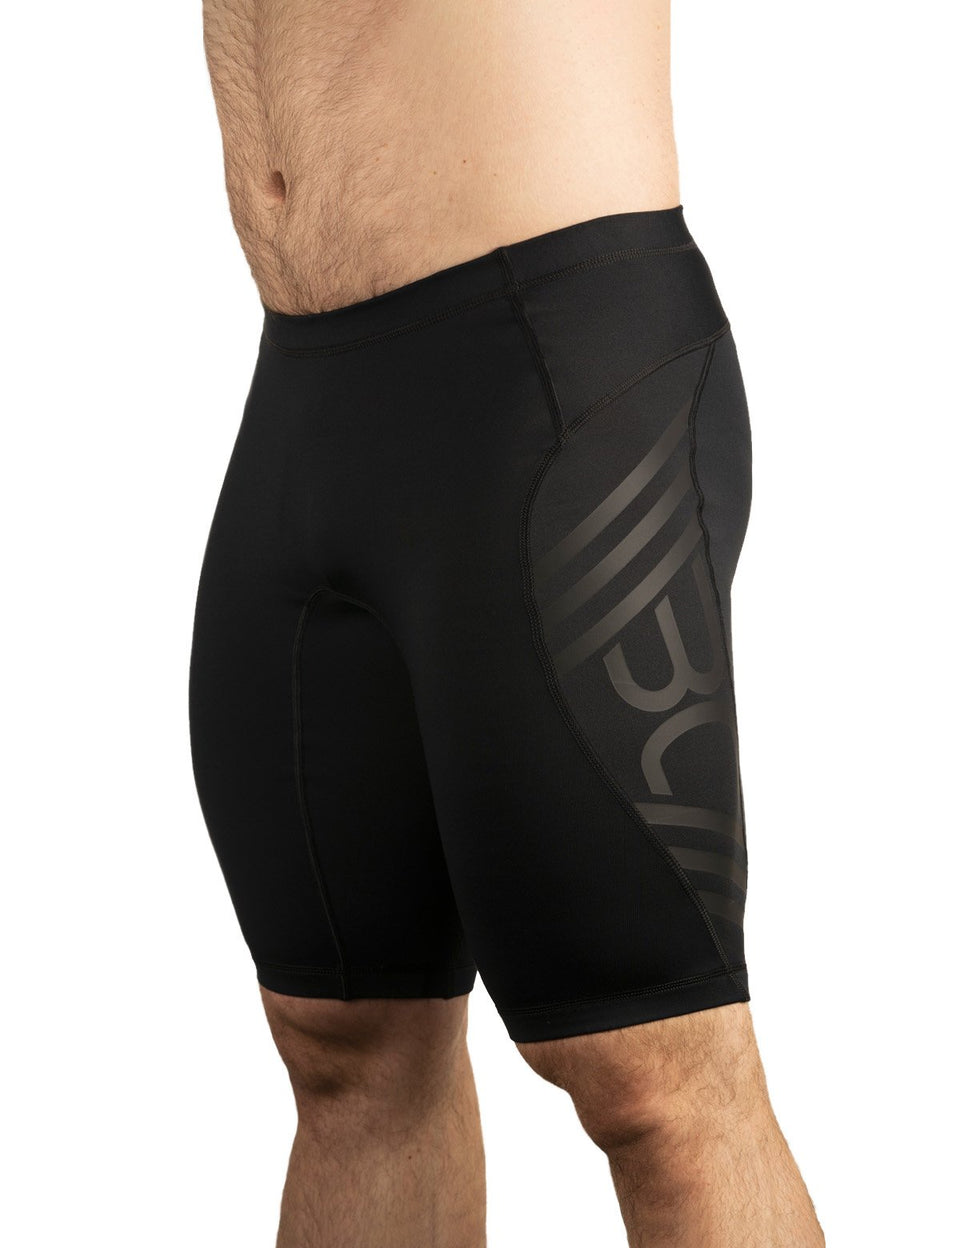 Warm Body Cold Mind Compression Shorts L5